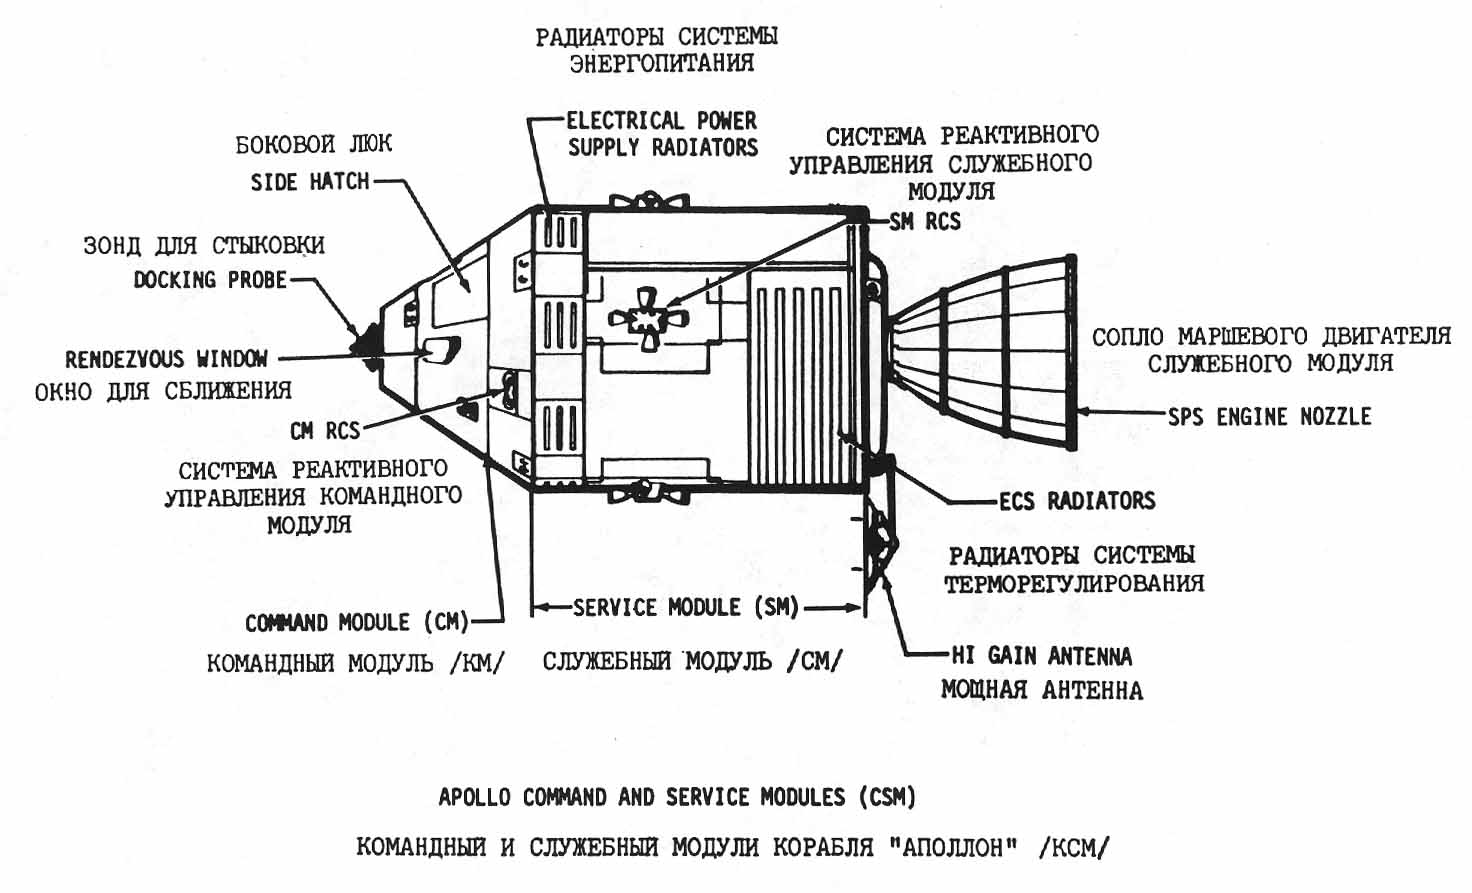 component diagram of the Apollo Command and Service Modules